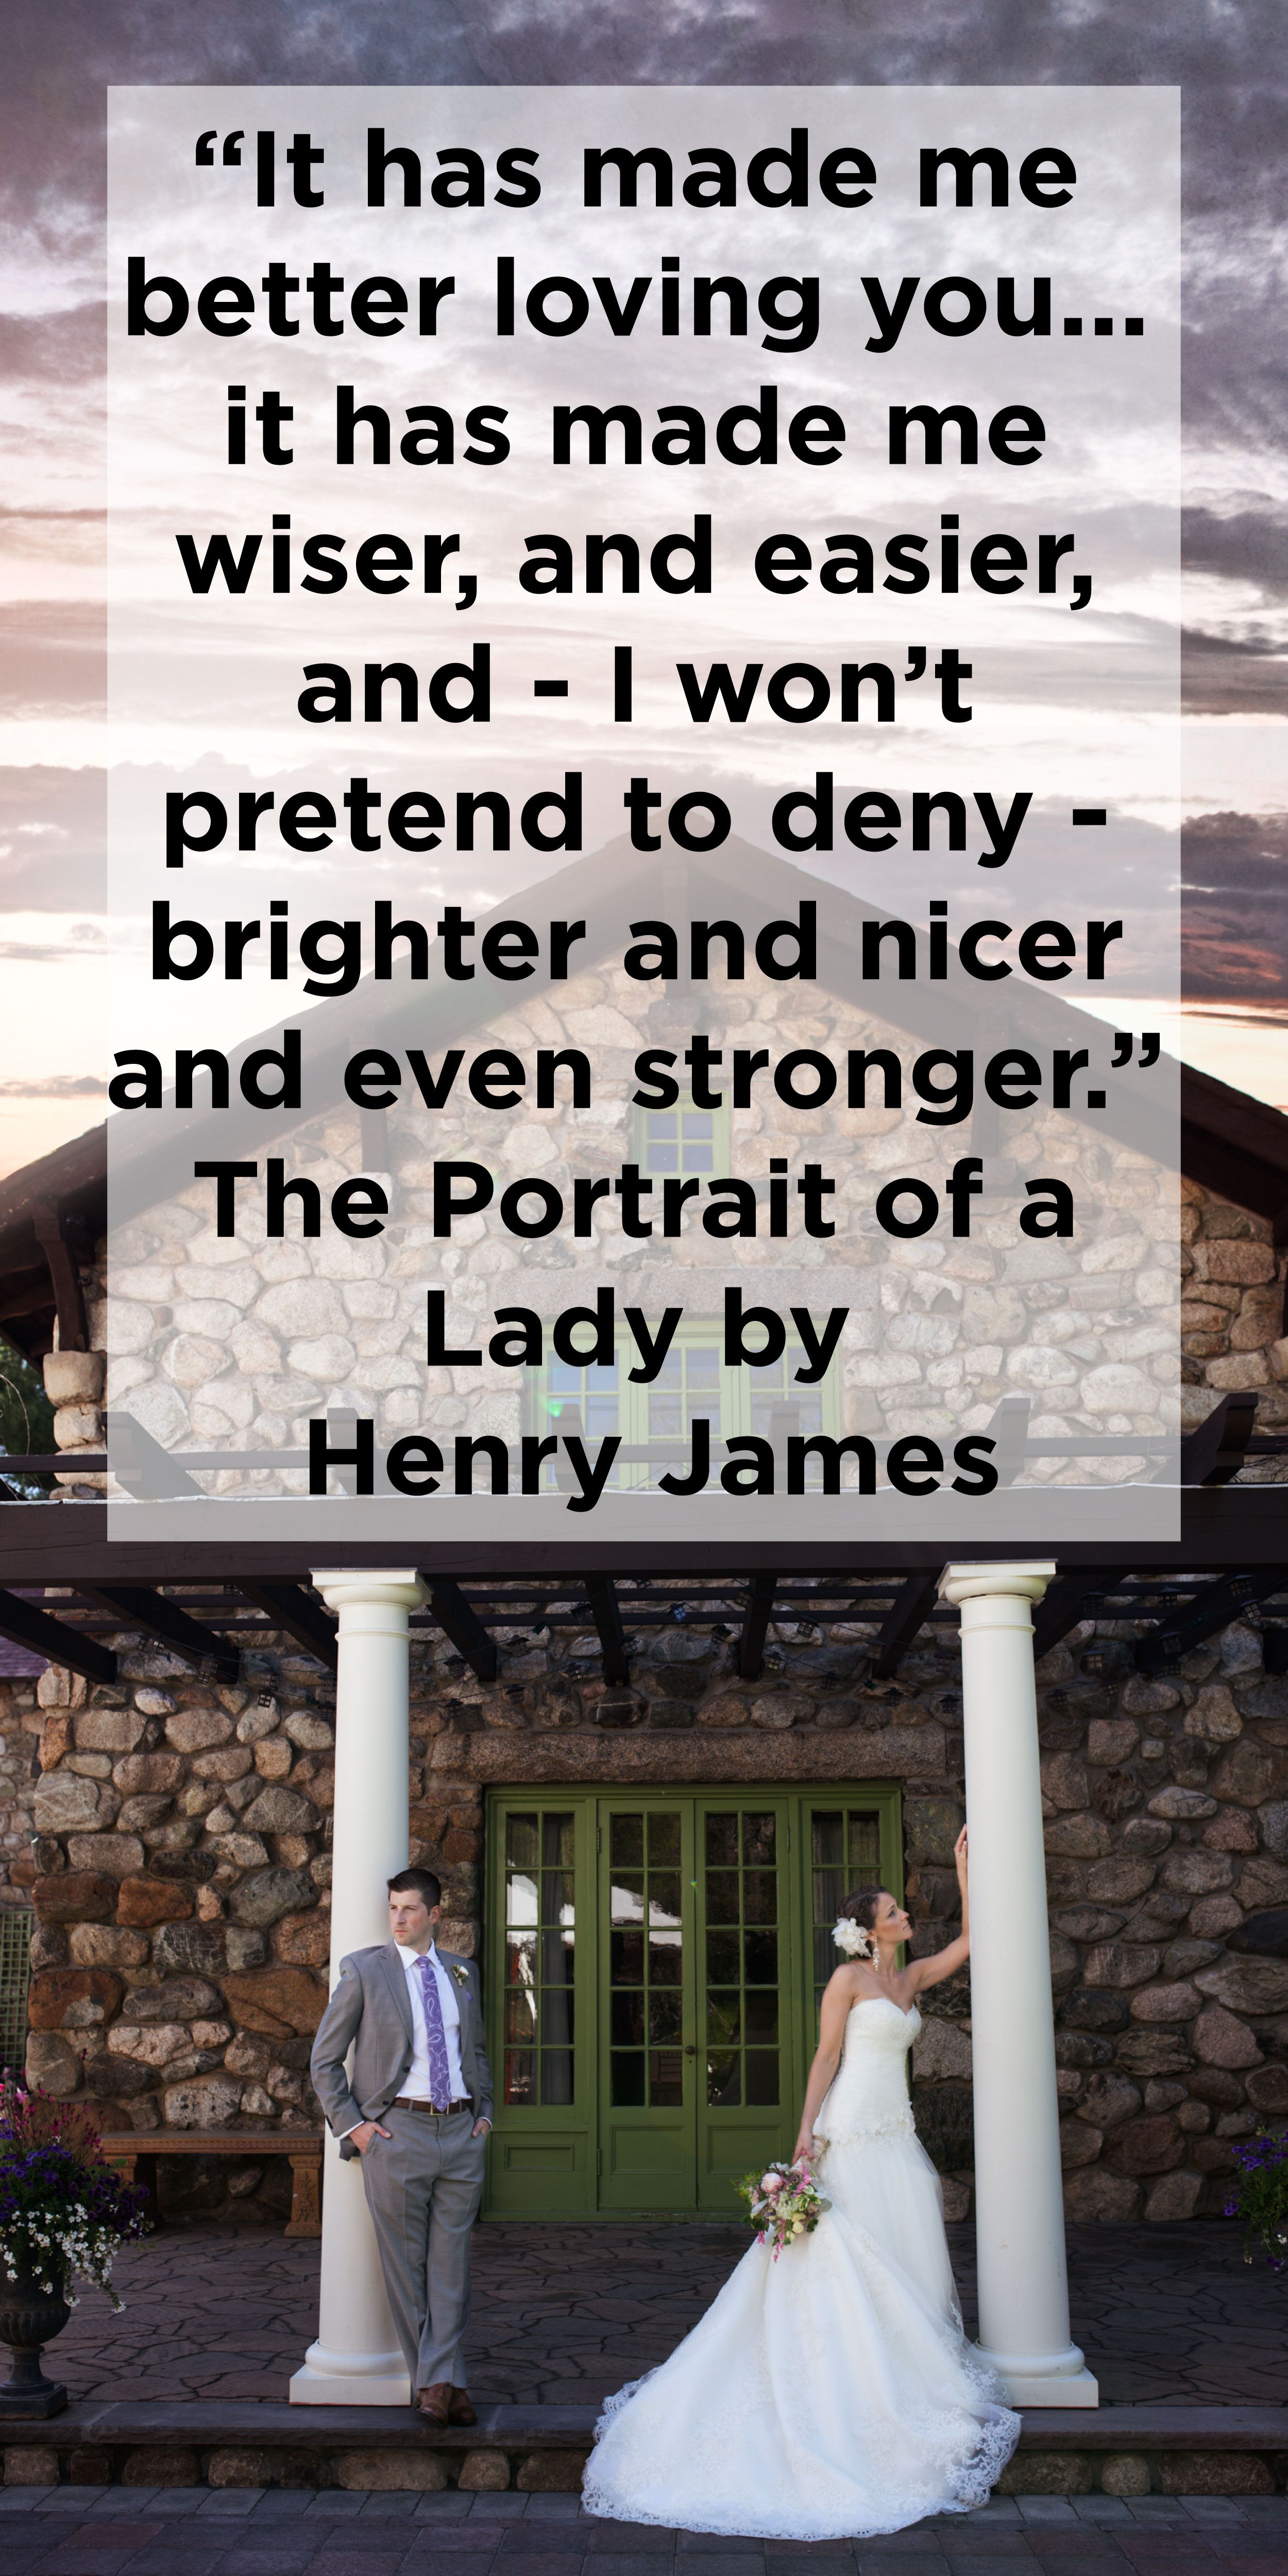 Henry James Love Quote For Wedding Reading Or Vows From Portrait Of A Lady Venue